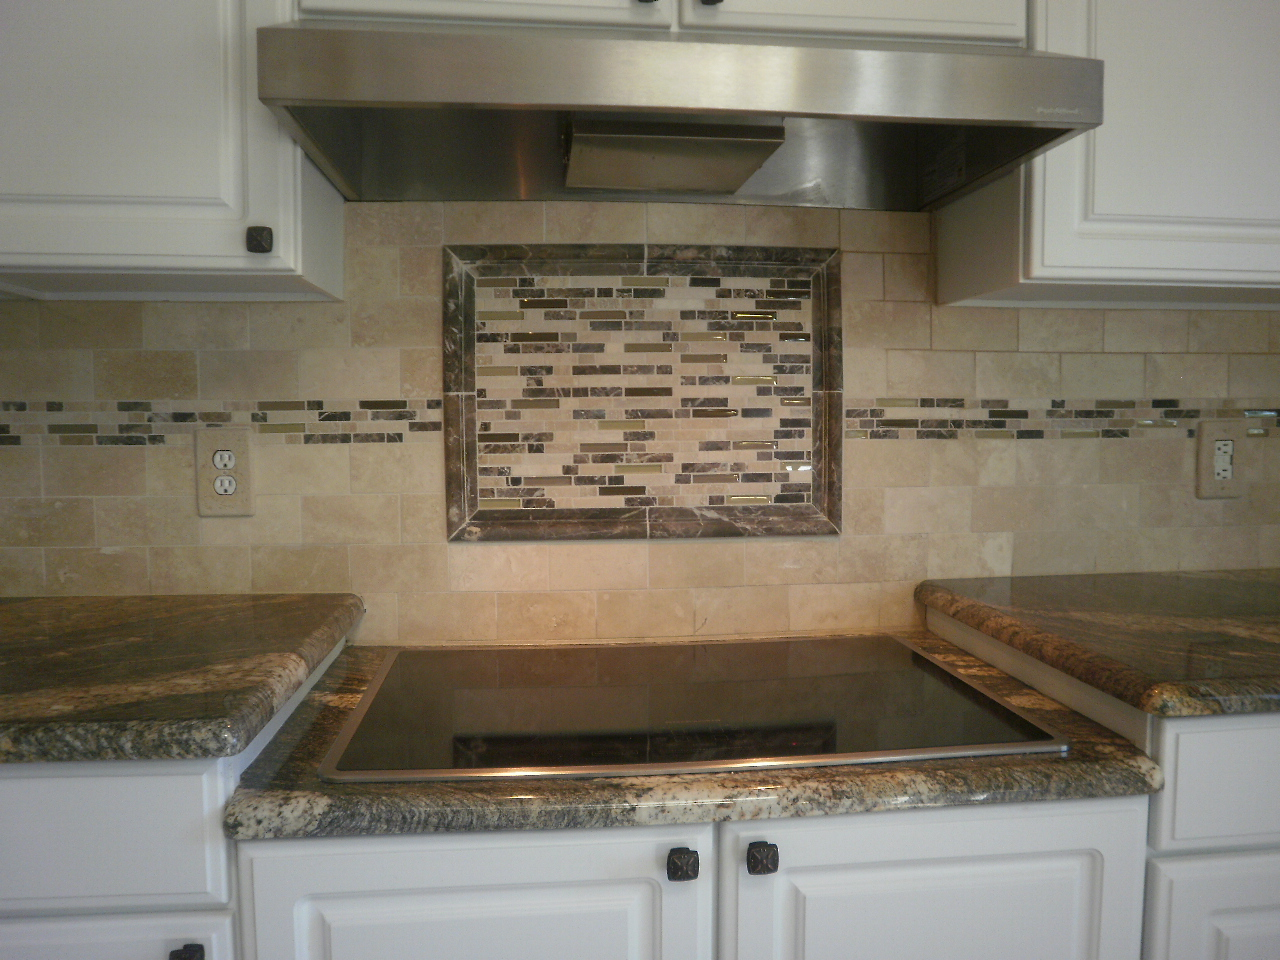 Kitchen backsplash ideas glass tile afreakatheart - Kitchen tile backsplash photos ...